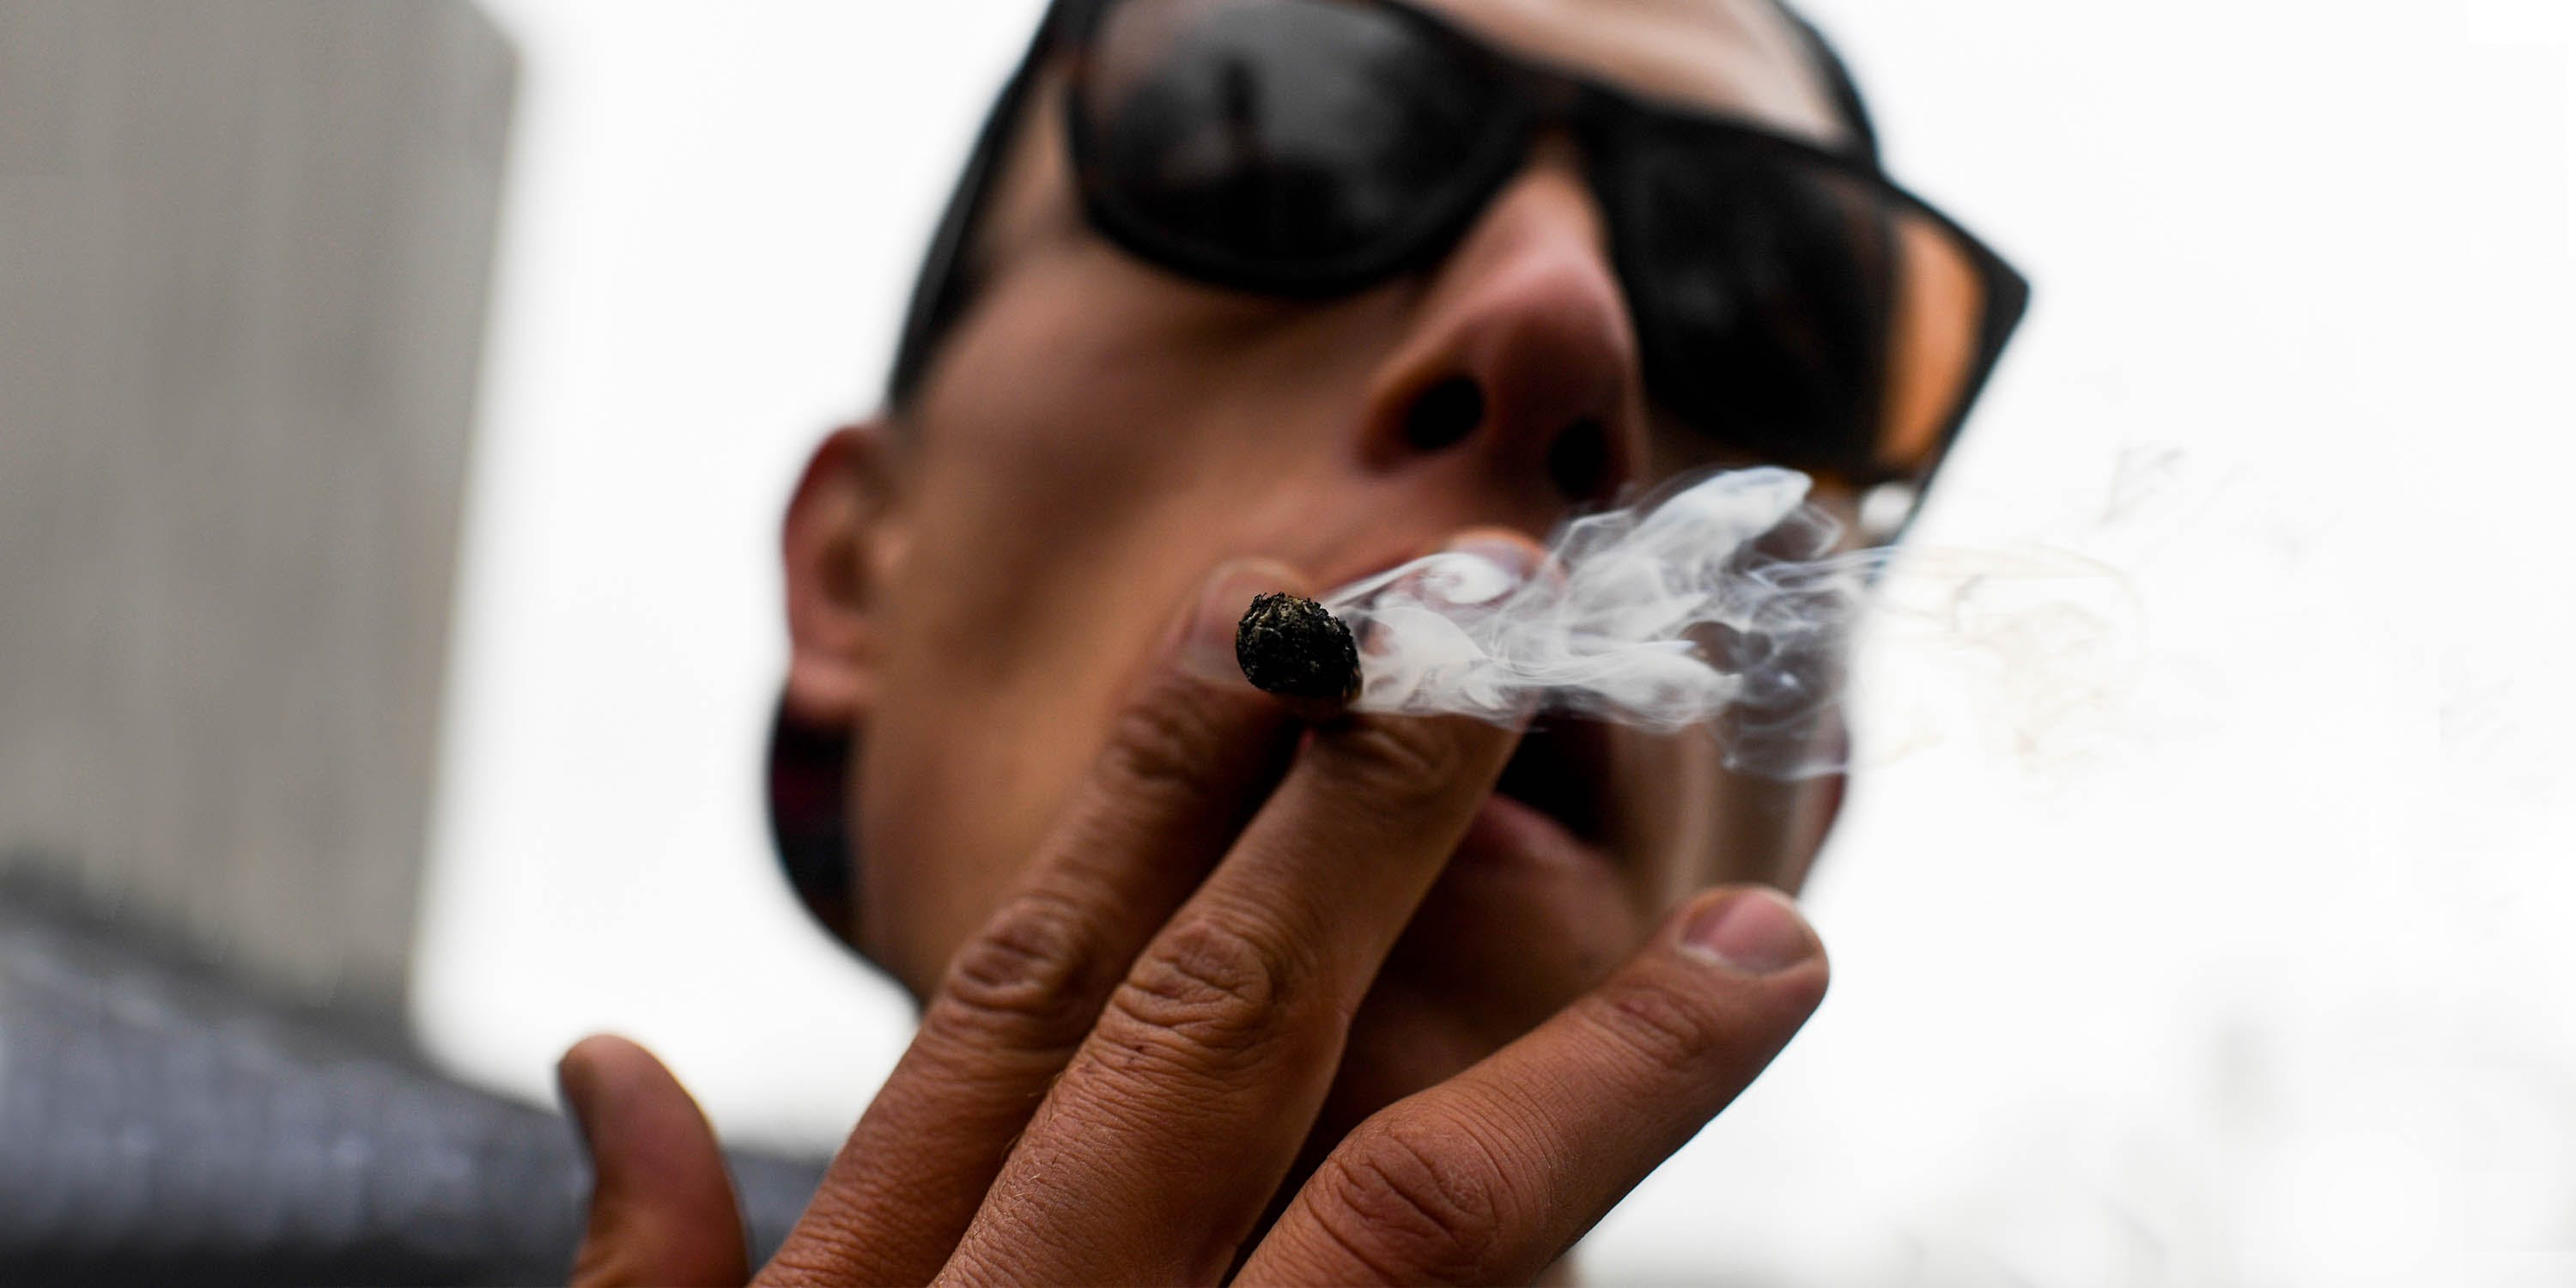 A man smokes a blunt while wearing glasses. Statistics show that cannabis use disorder is a real thing, and numbers are soaring.